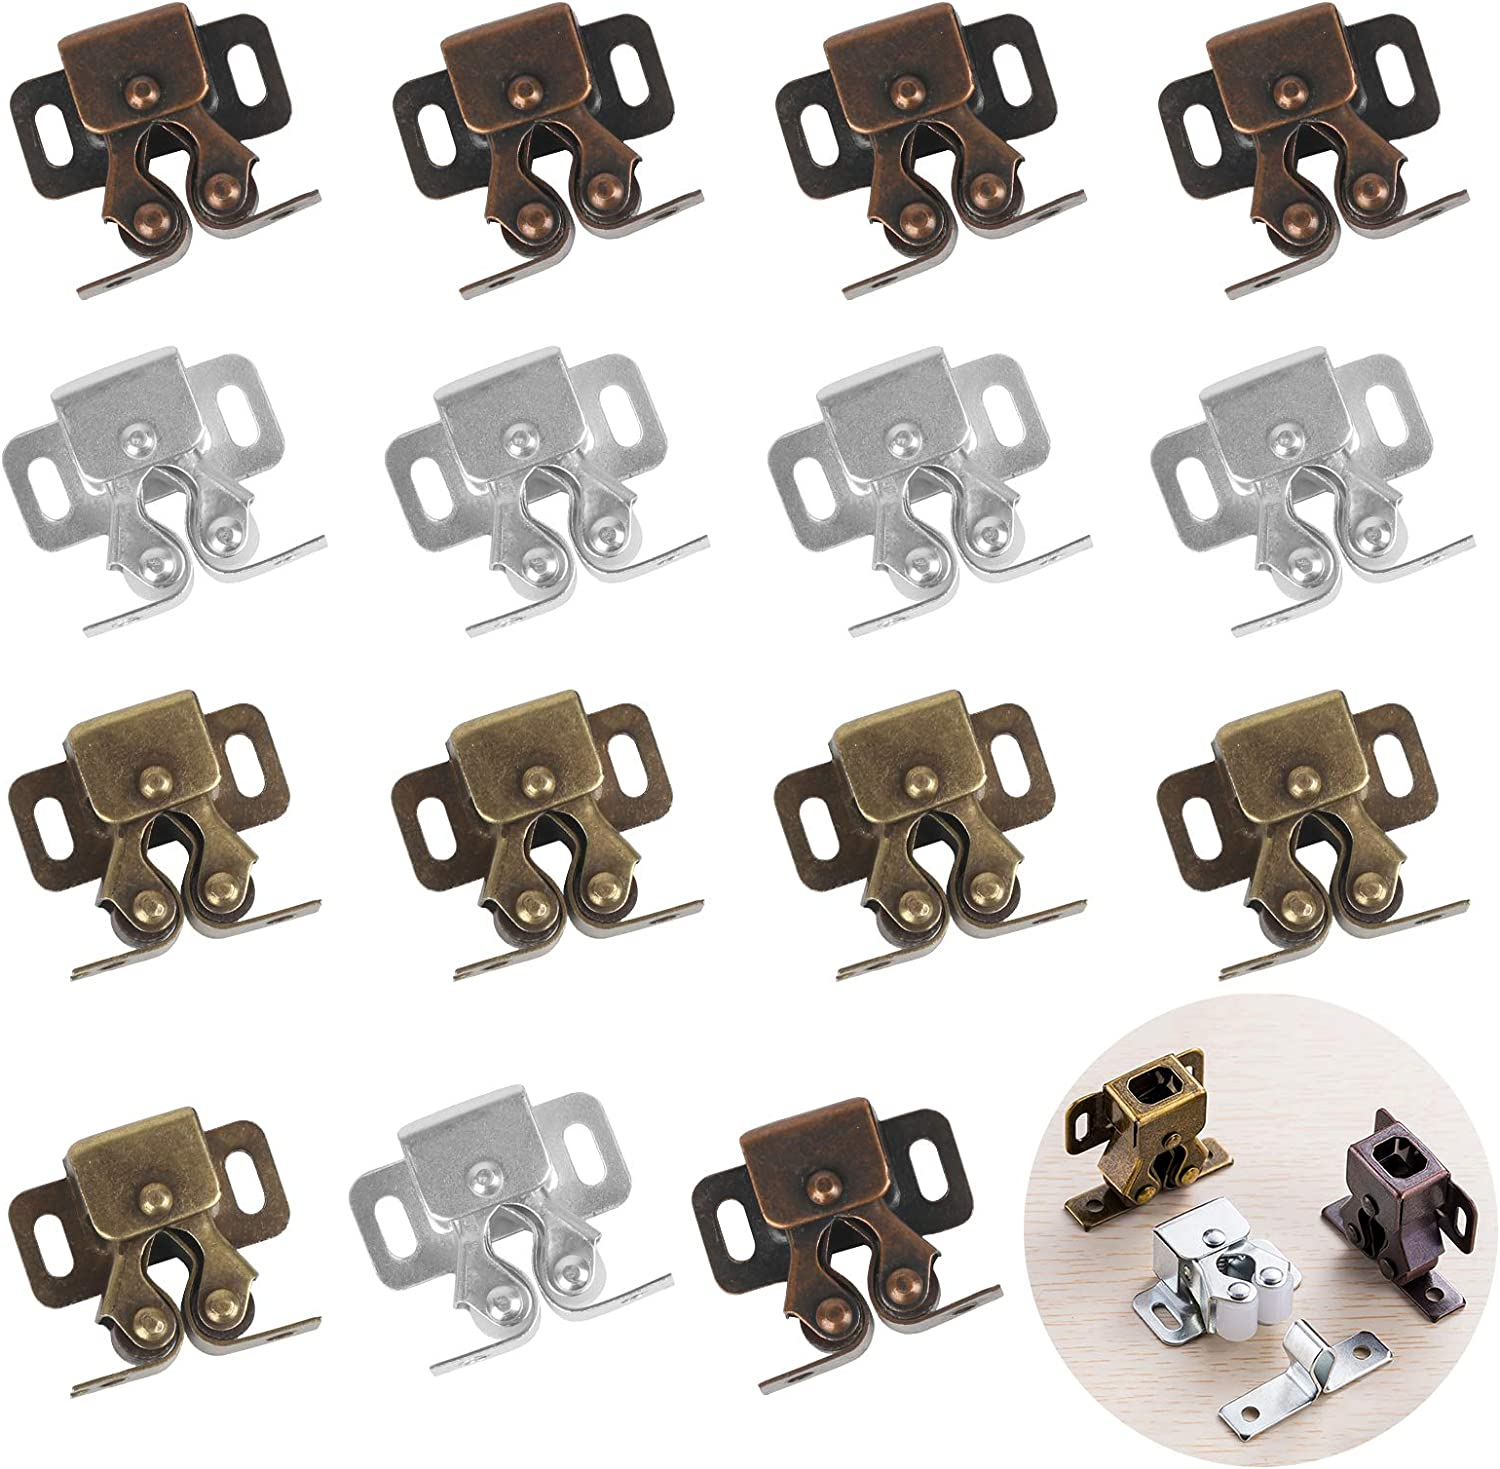 LAITER 15pcs Roller Catch Cupboard Door Catches Double Ball Cabinet Catch with Srews for Home Furniture Strong Hold Closet Wardrobe Doors Roller Locks